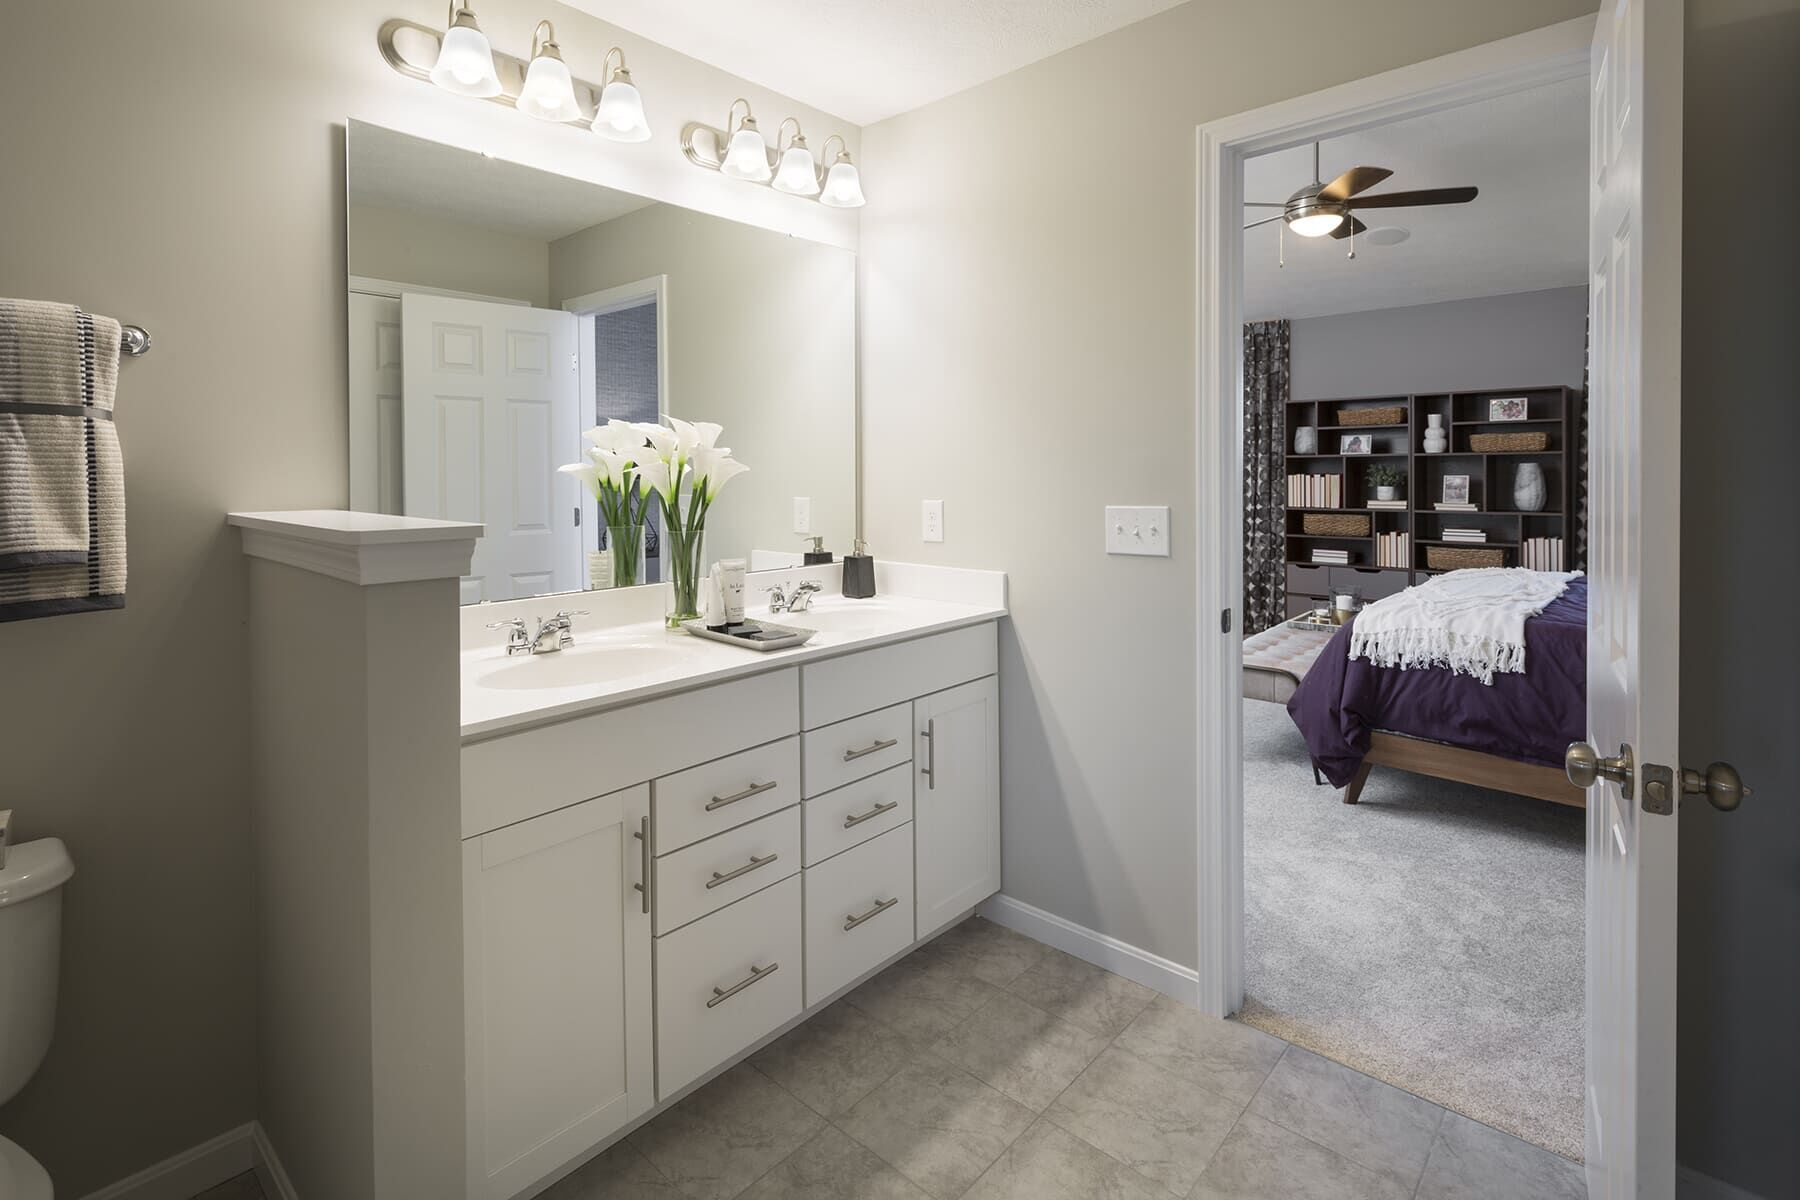 Bathroom featured in the Salinger By M/I Homes in Cincinnati, OH